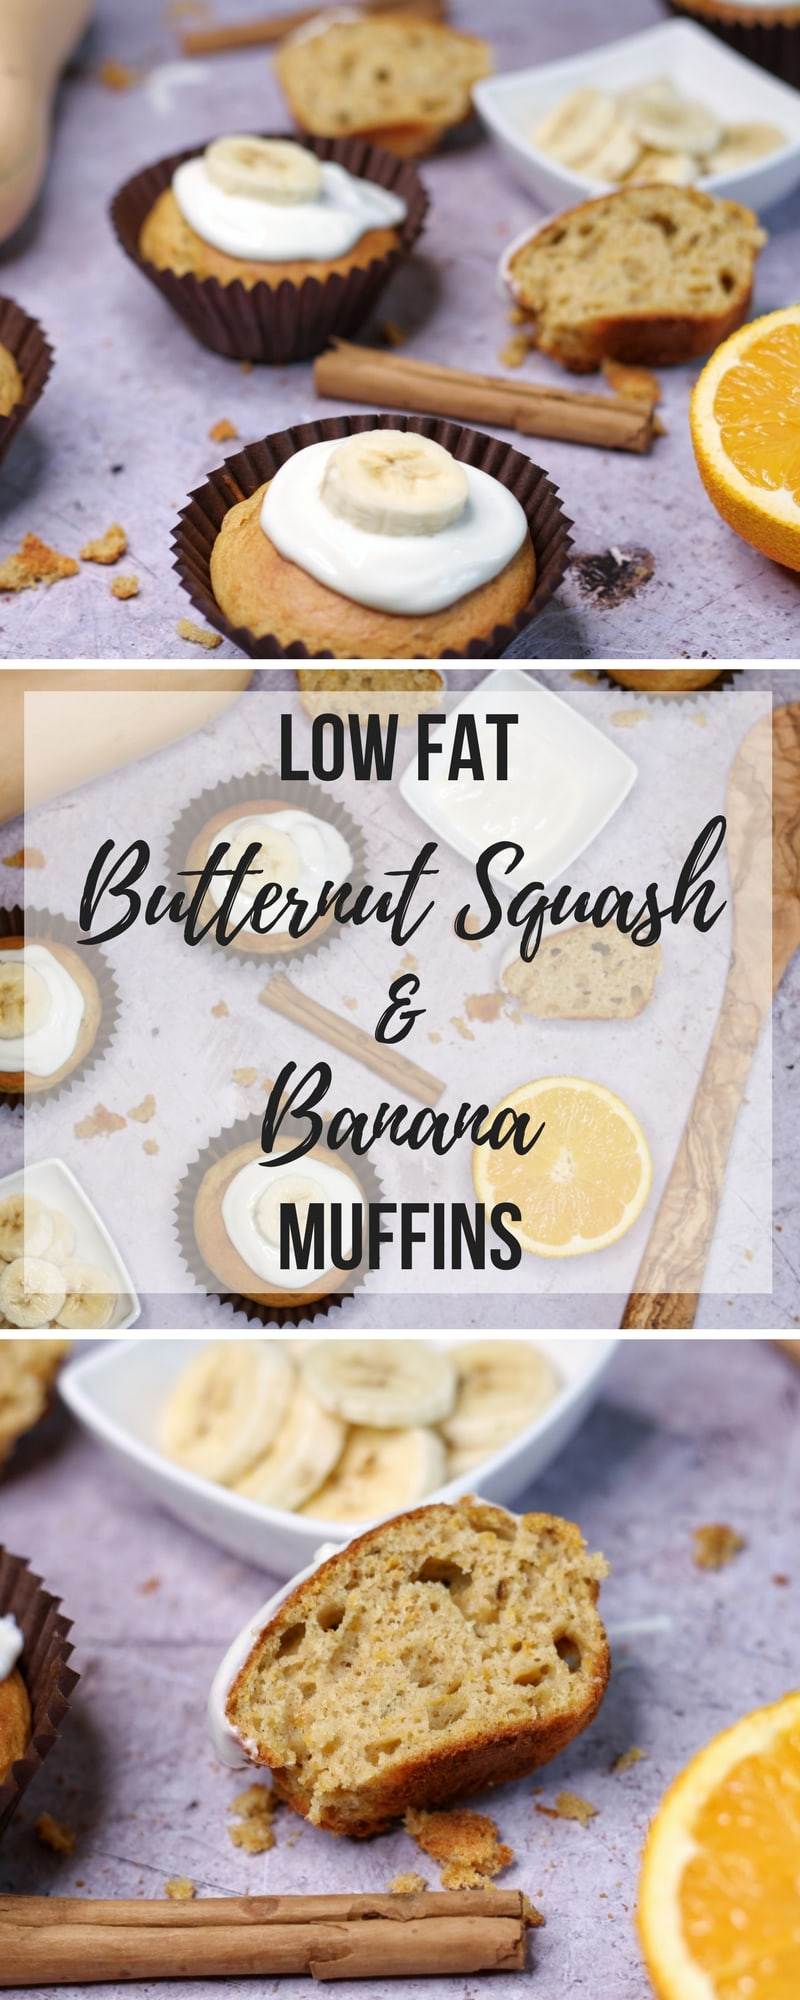 Low Fat Butternut Squash and Banana Muffins - a recipe for banana and butternut squash muffins with low fat greek yogurt frosting. #recipe #lowfatrecipe #muffins #bananamuffins